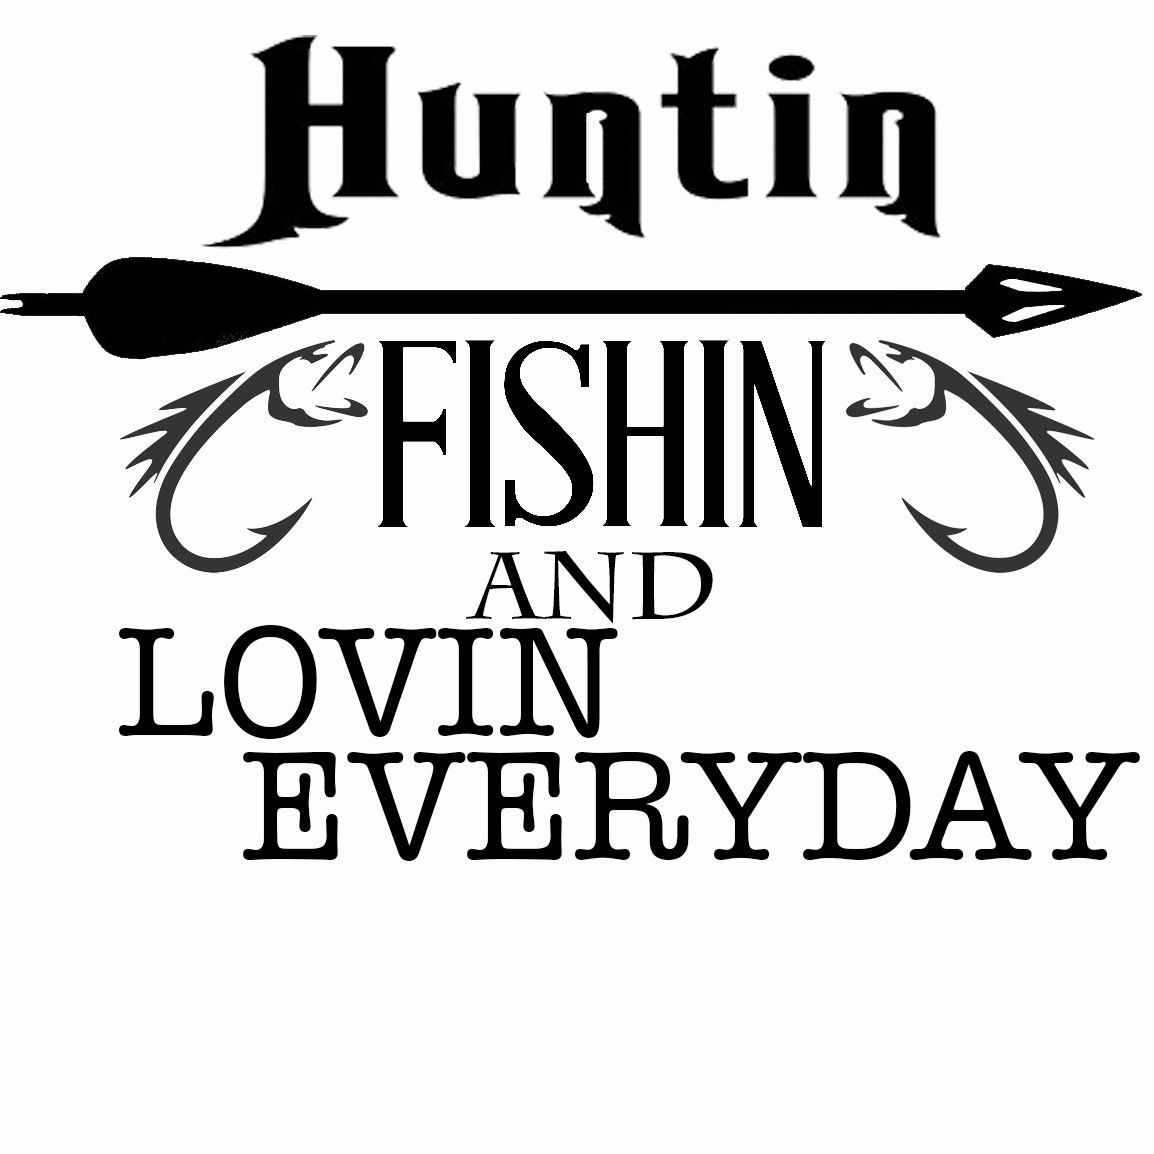 Hunting Fishing And Loving Everyday Luke Bryan Decal Magnets - Country boy decals for trucks